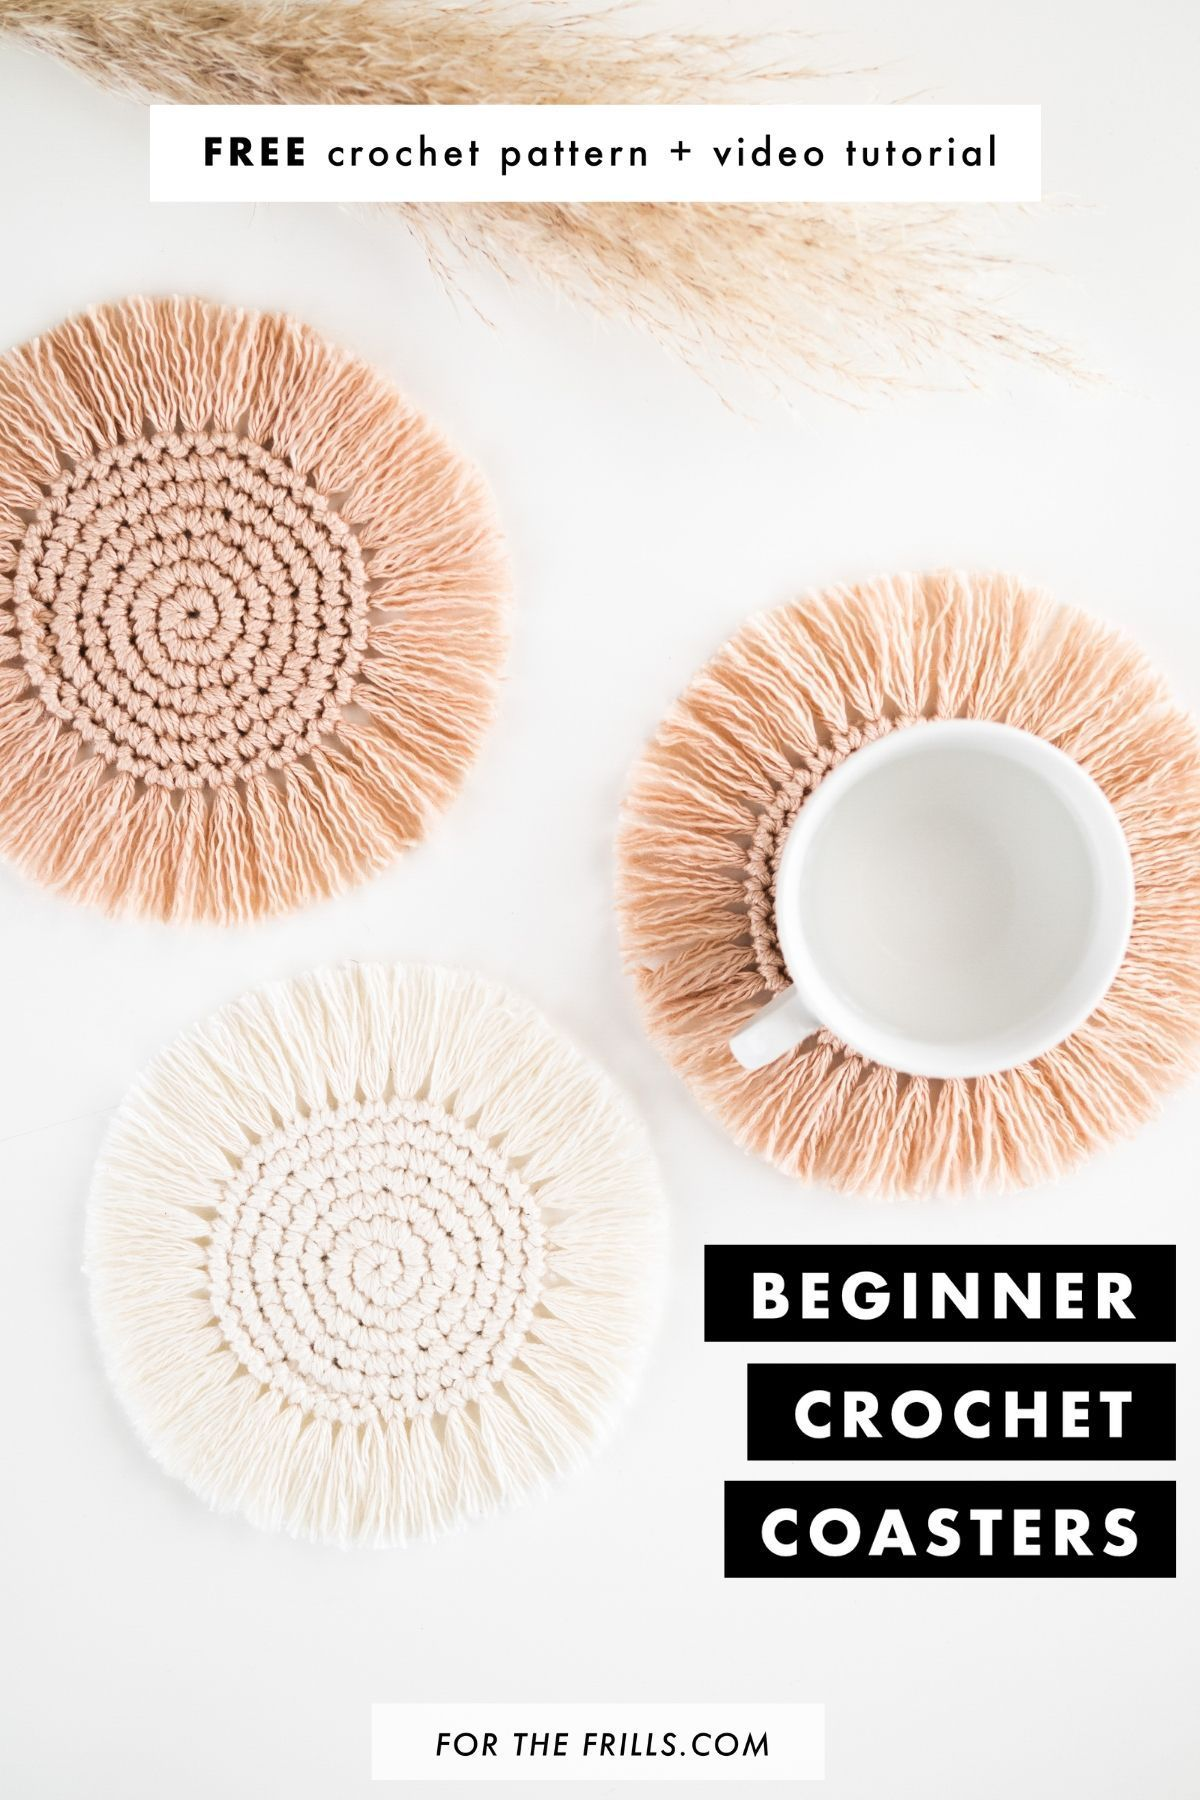 Up your summer home décor game with these boho crochet coasters. Quick and easy to make, these simple crochet coasters have fringe to create  a fun boho feel! The free crochet pattern has a step-by-step video tutorial so these boho crochet coasters are a great DIY project for crochet beginners! #boho #easycrochet #crochetcoaster #bohocoaster #freepattern